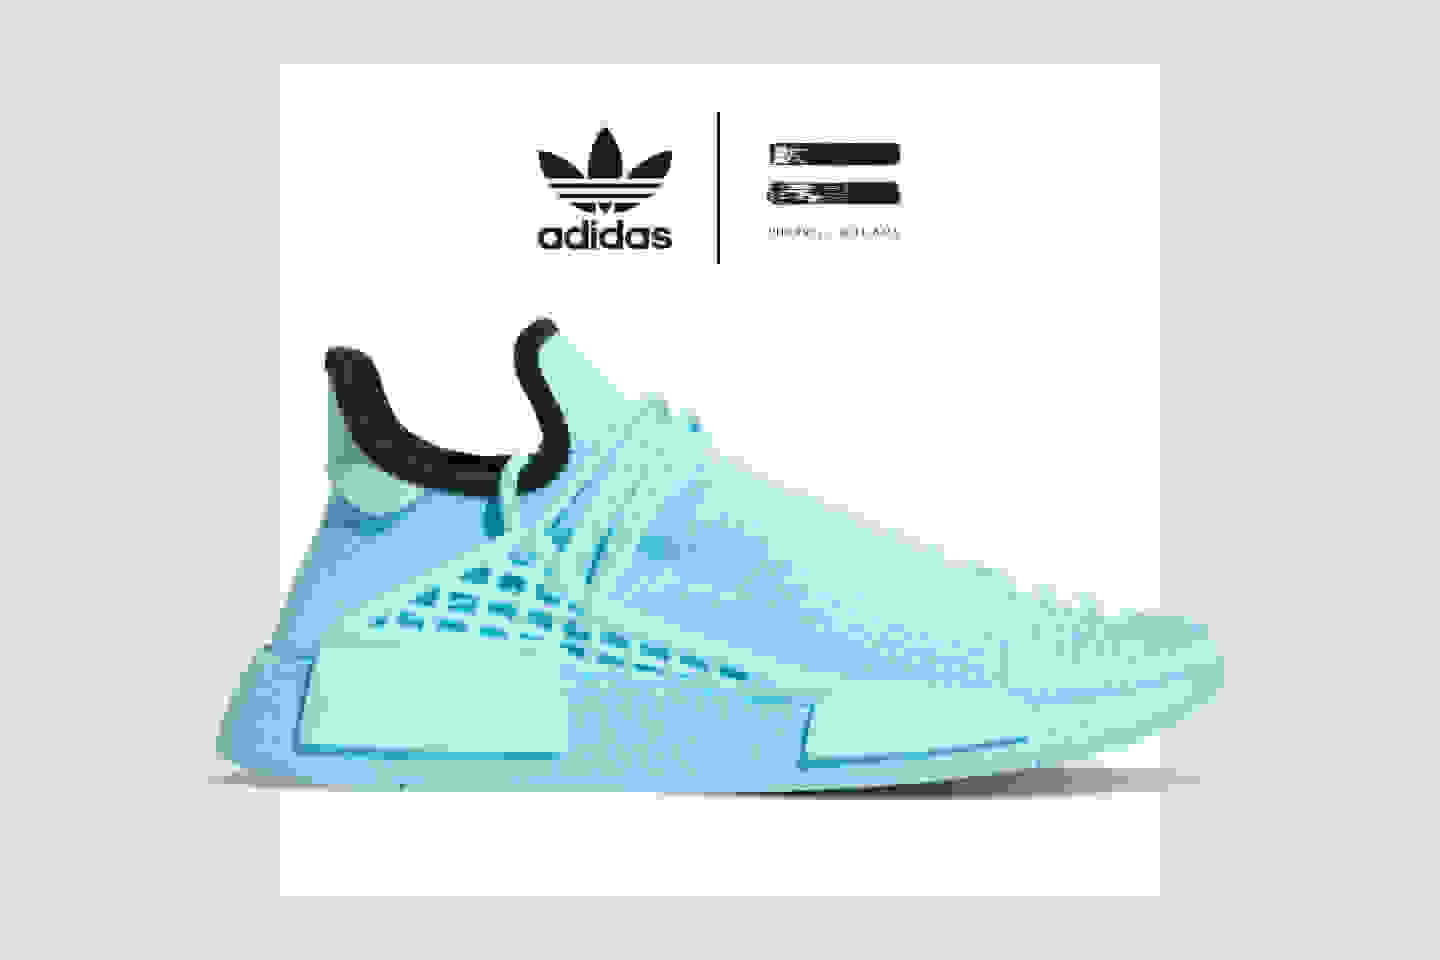 Sideview of an HU NMD Aqua shoe, highlighting the full-length Boost midsole, the midfoot lace cage, and the rope-style lacing system.